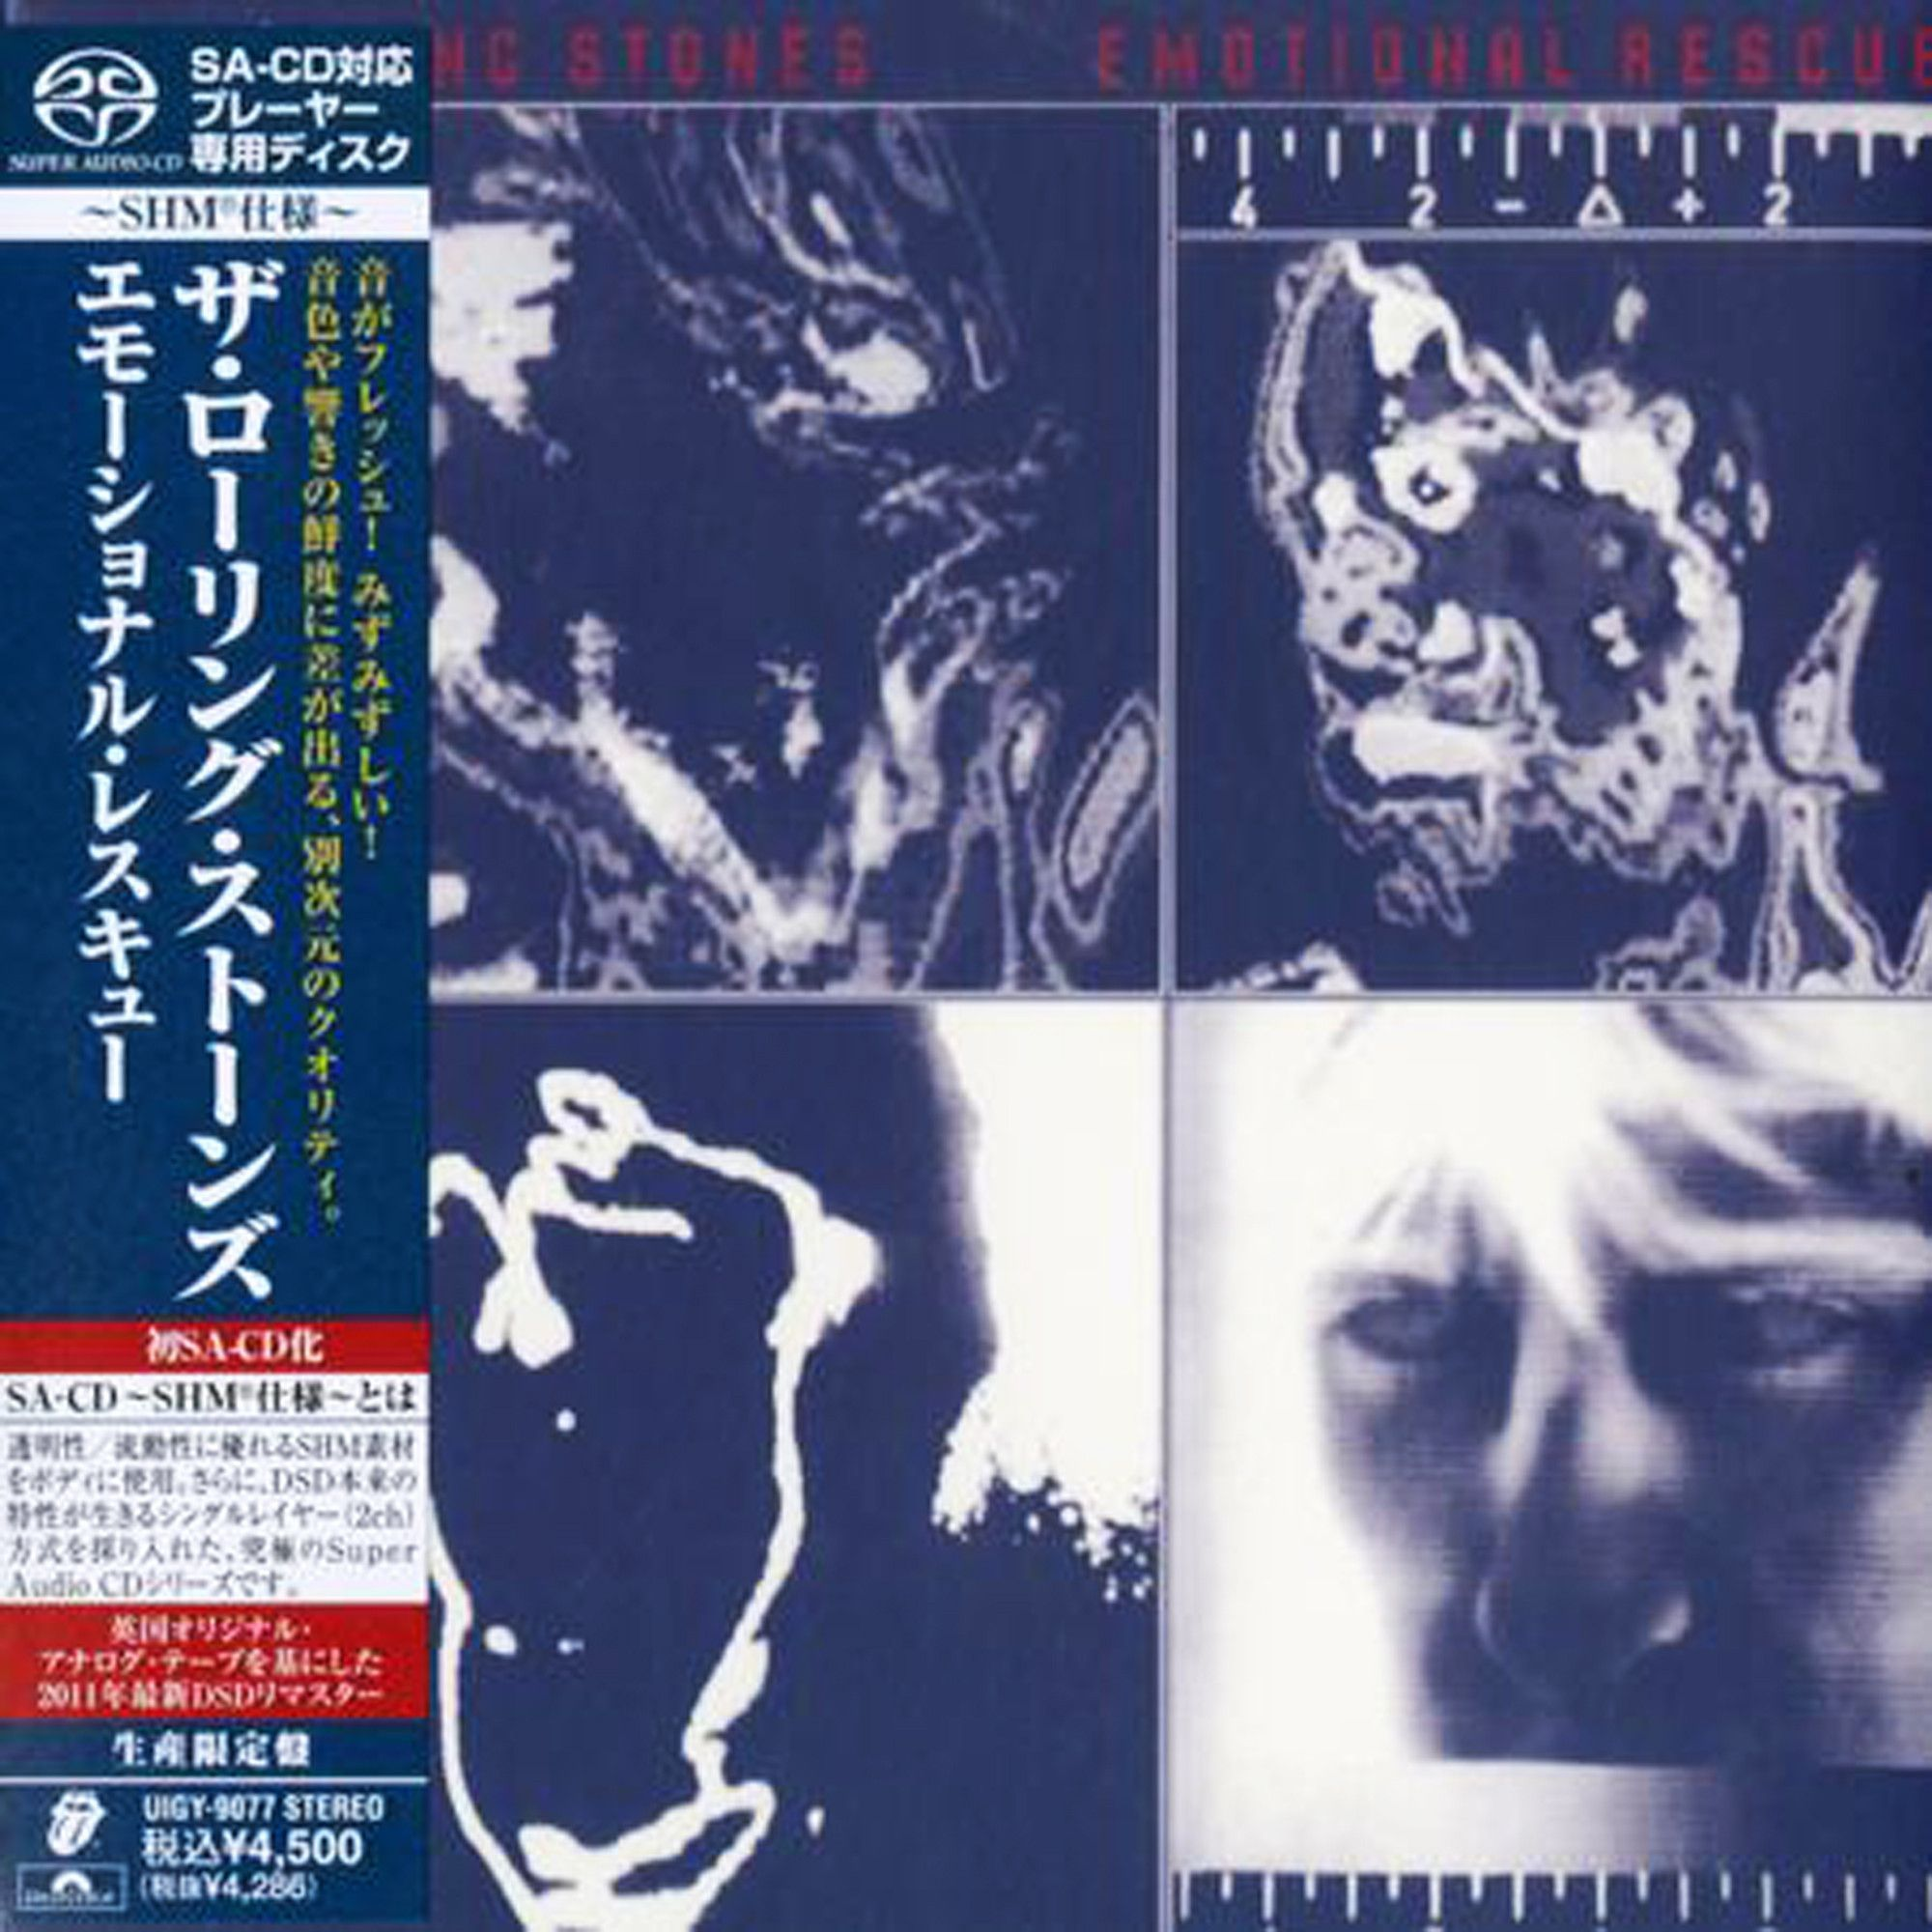 The Rolling Stones - Emotional Rescue - Japan Mini LP SACD